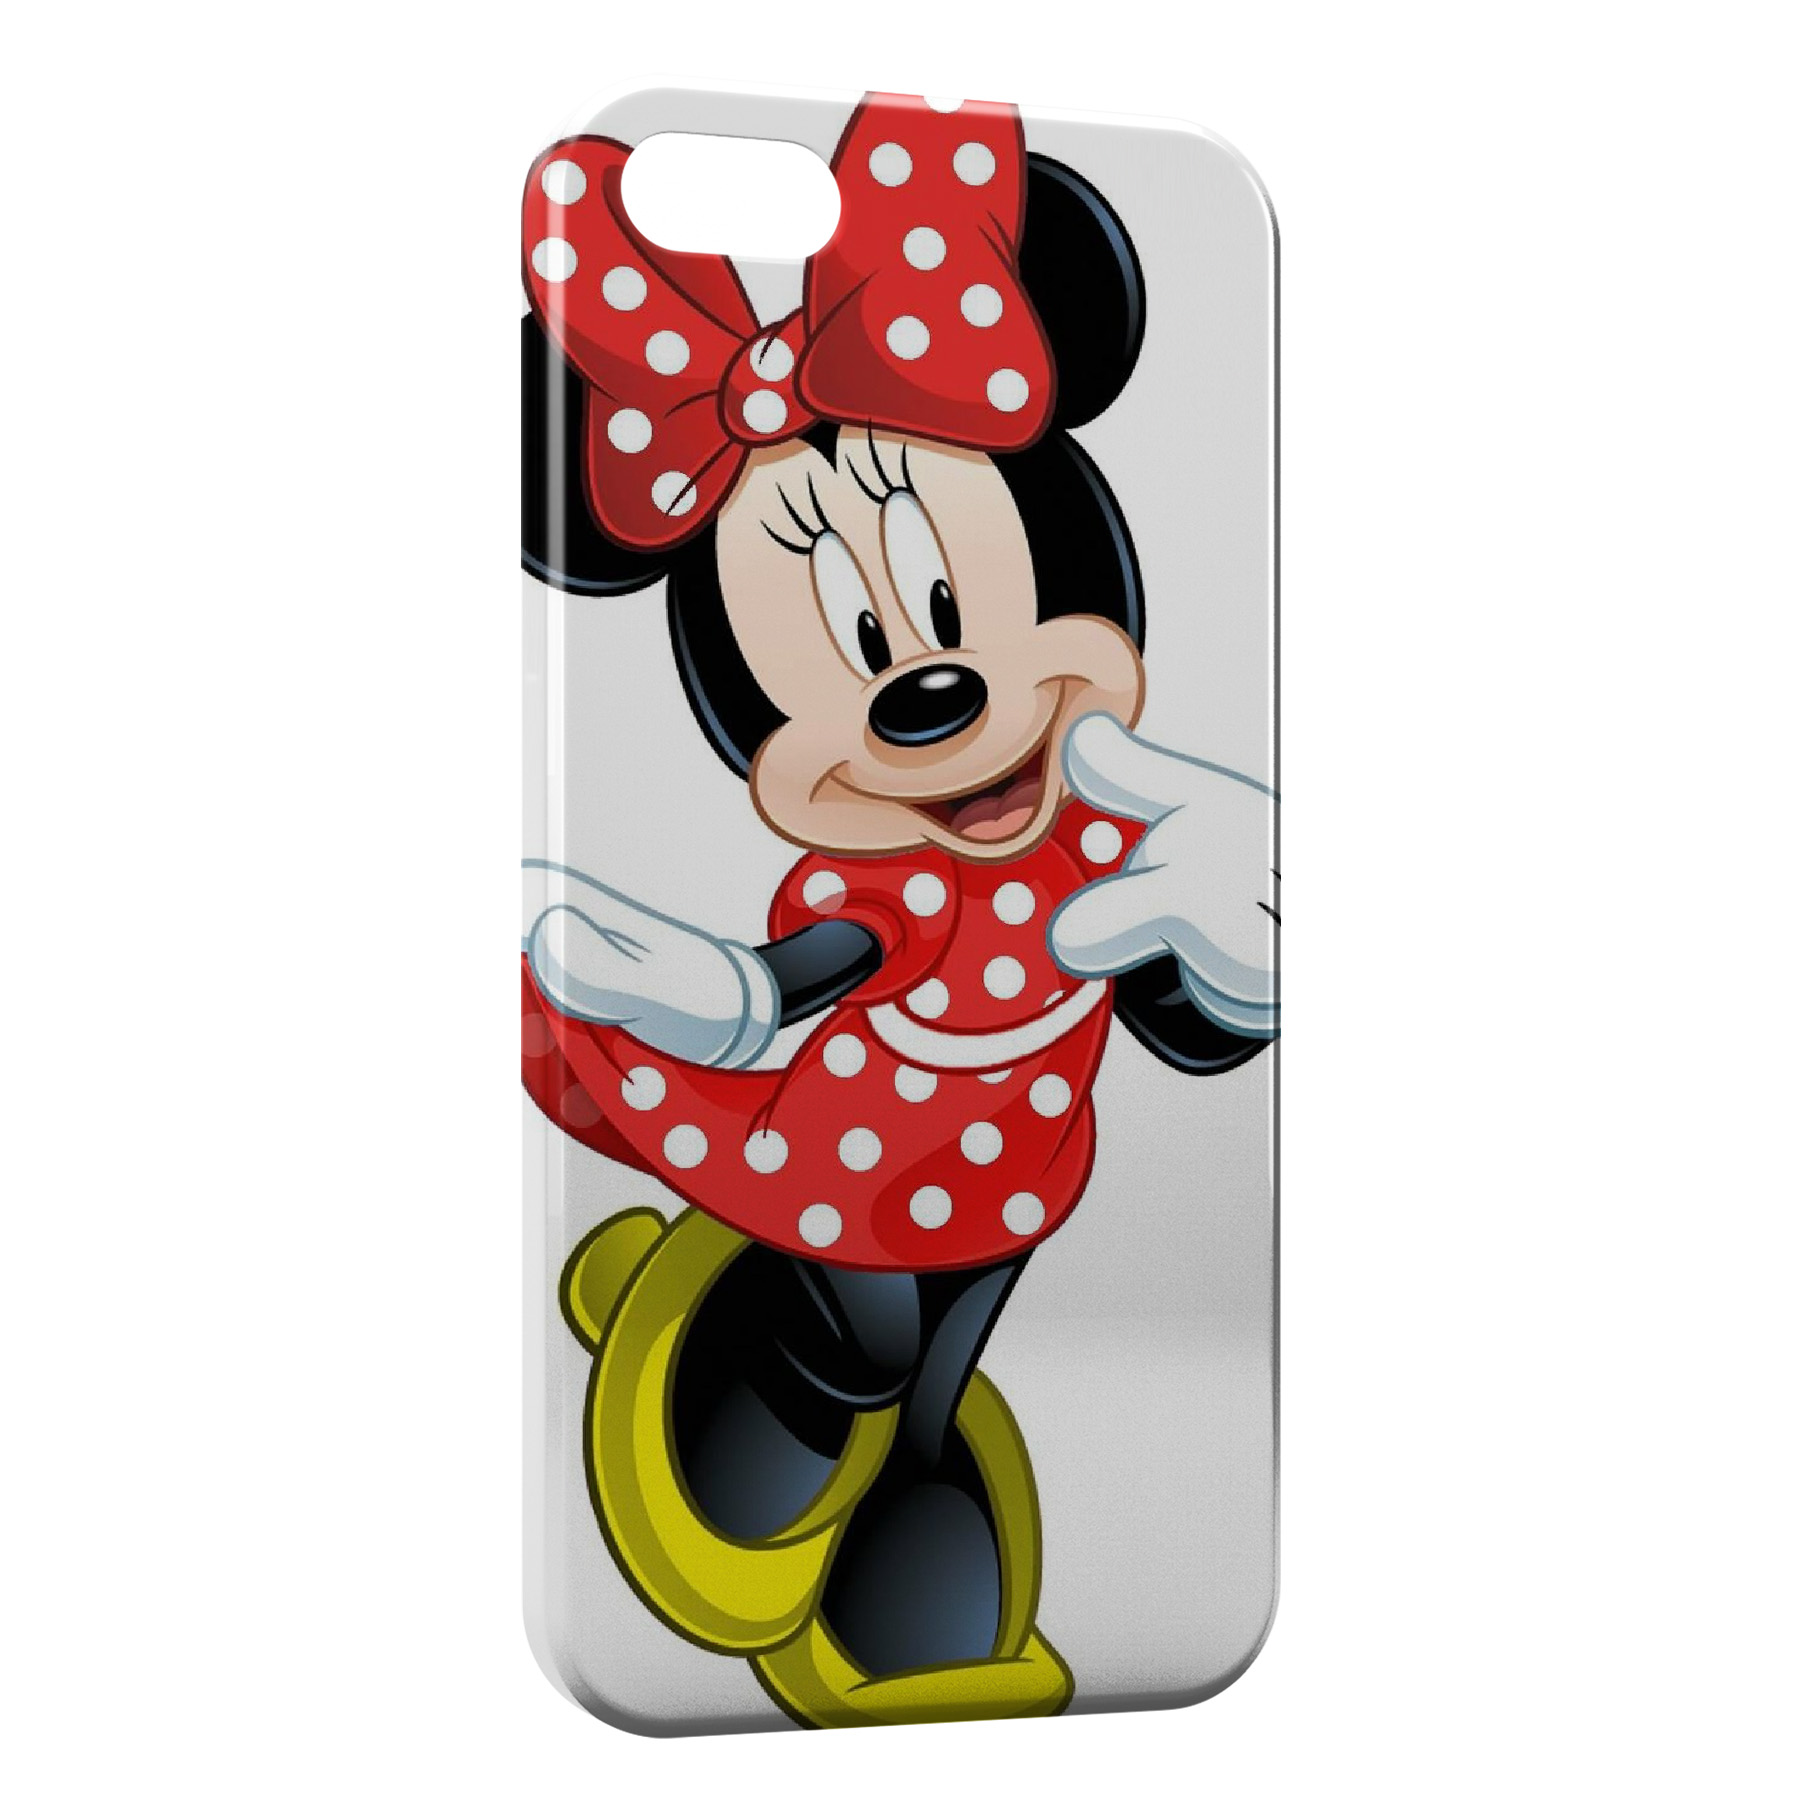 Coque iPhone 4 4S Minnie Mickey 4